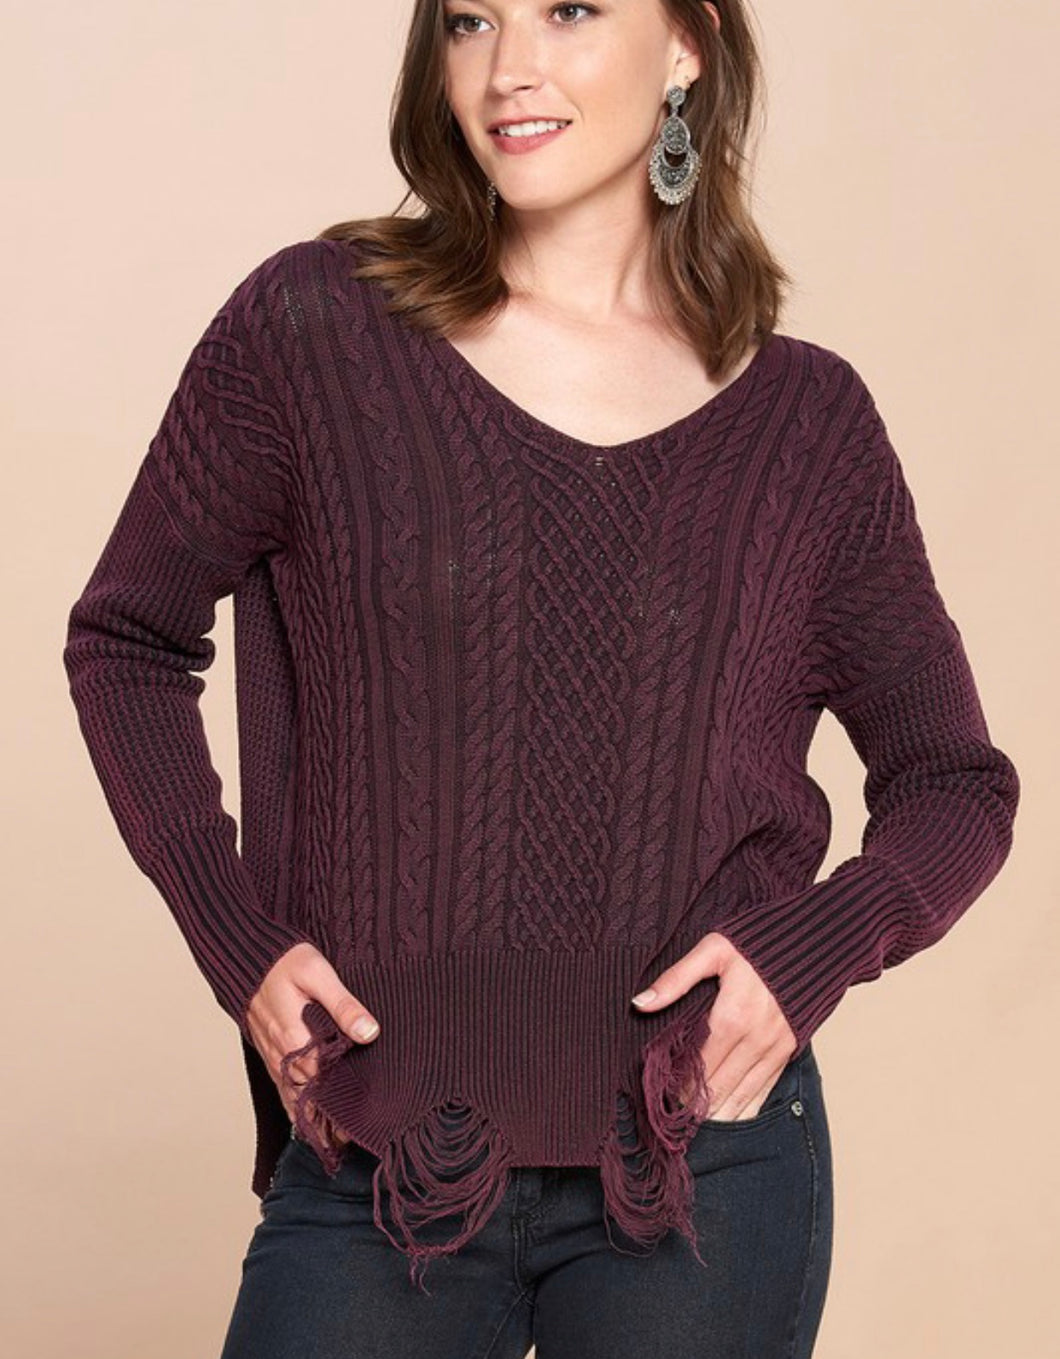 Kingston Distressed Sweater {regular and curvy sizes}